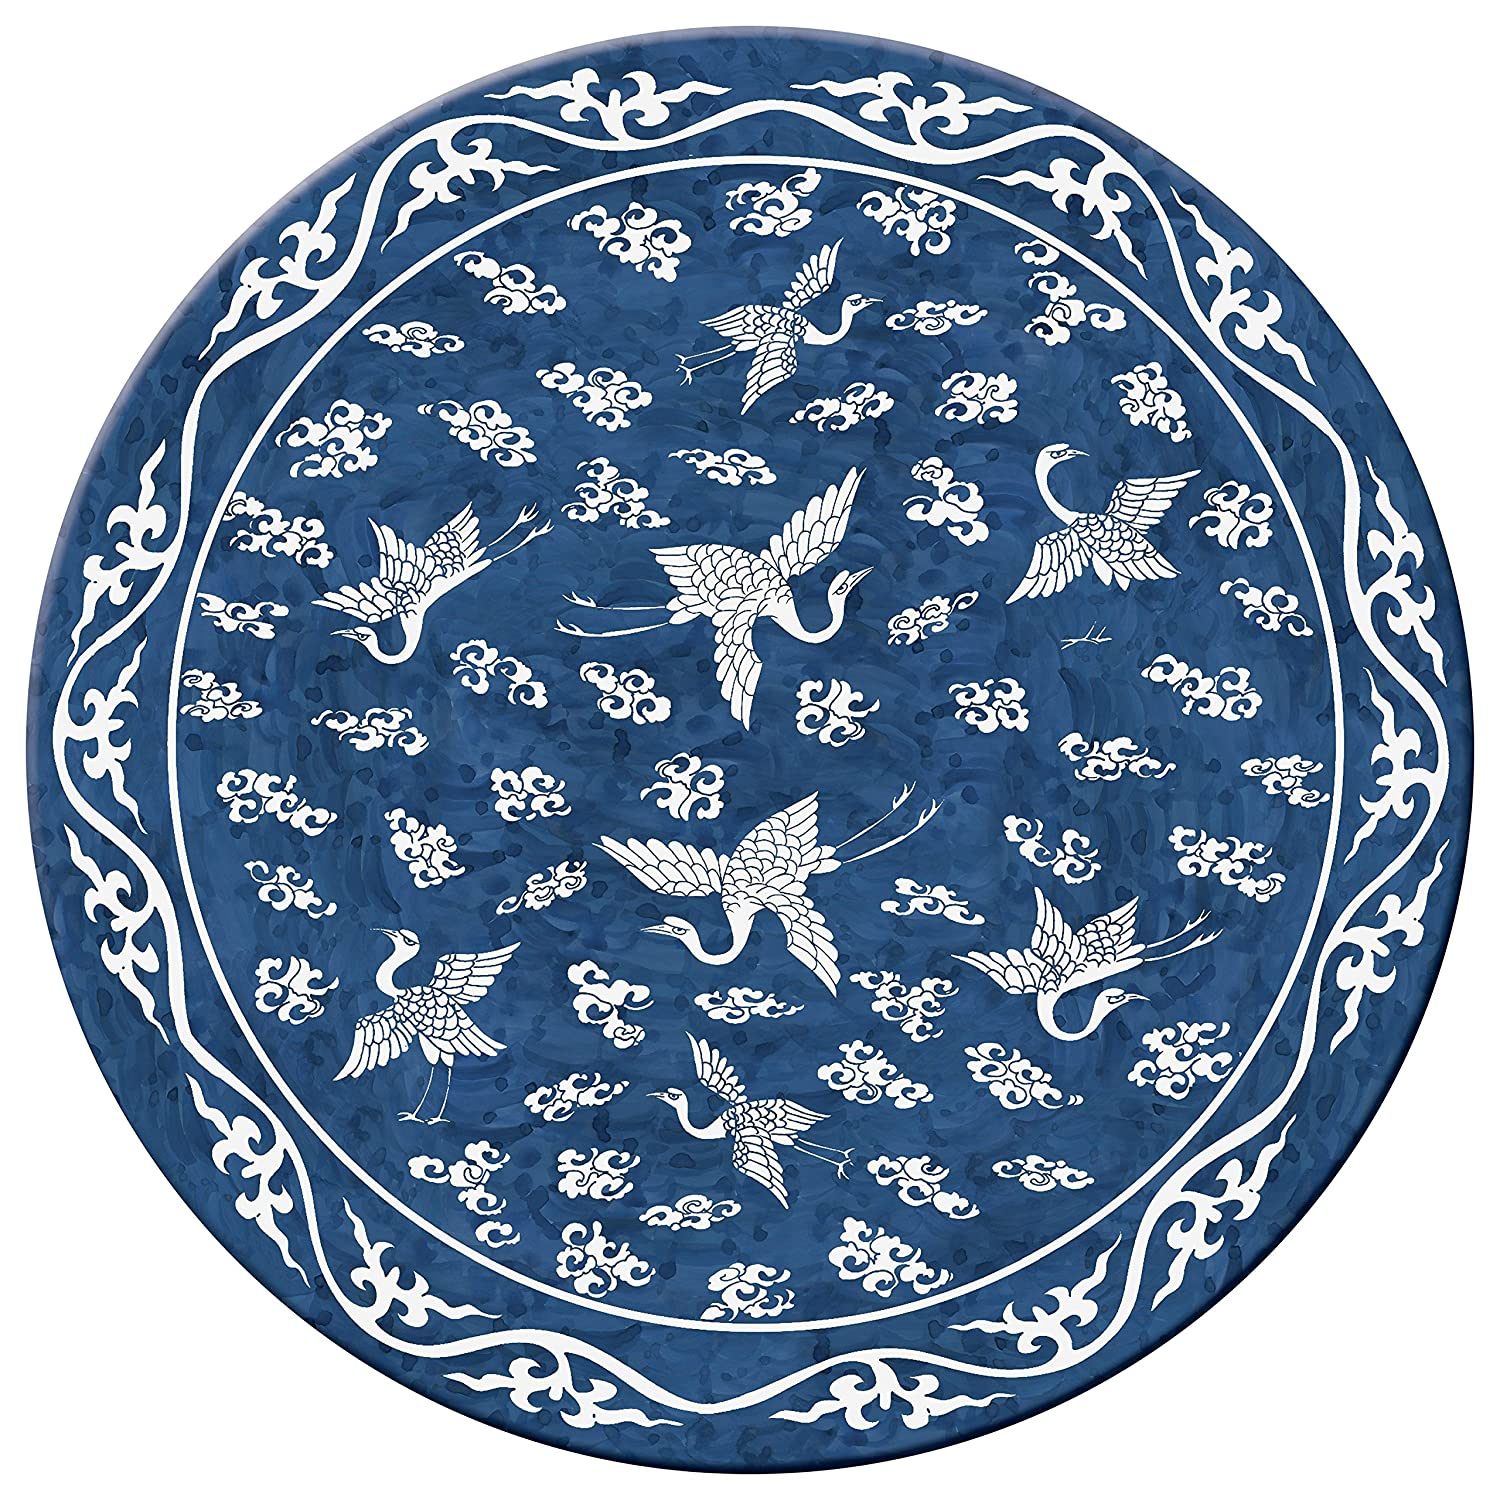 Hadley Table MING Blue Hard Placemats, ROUND, SET OF 4